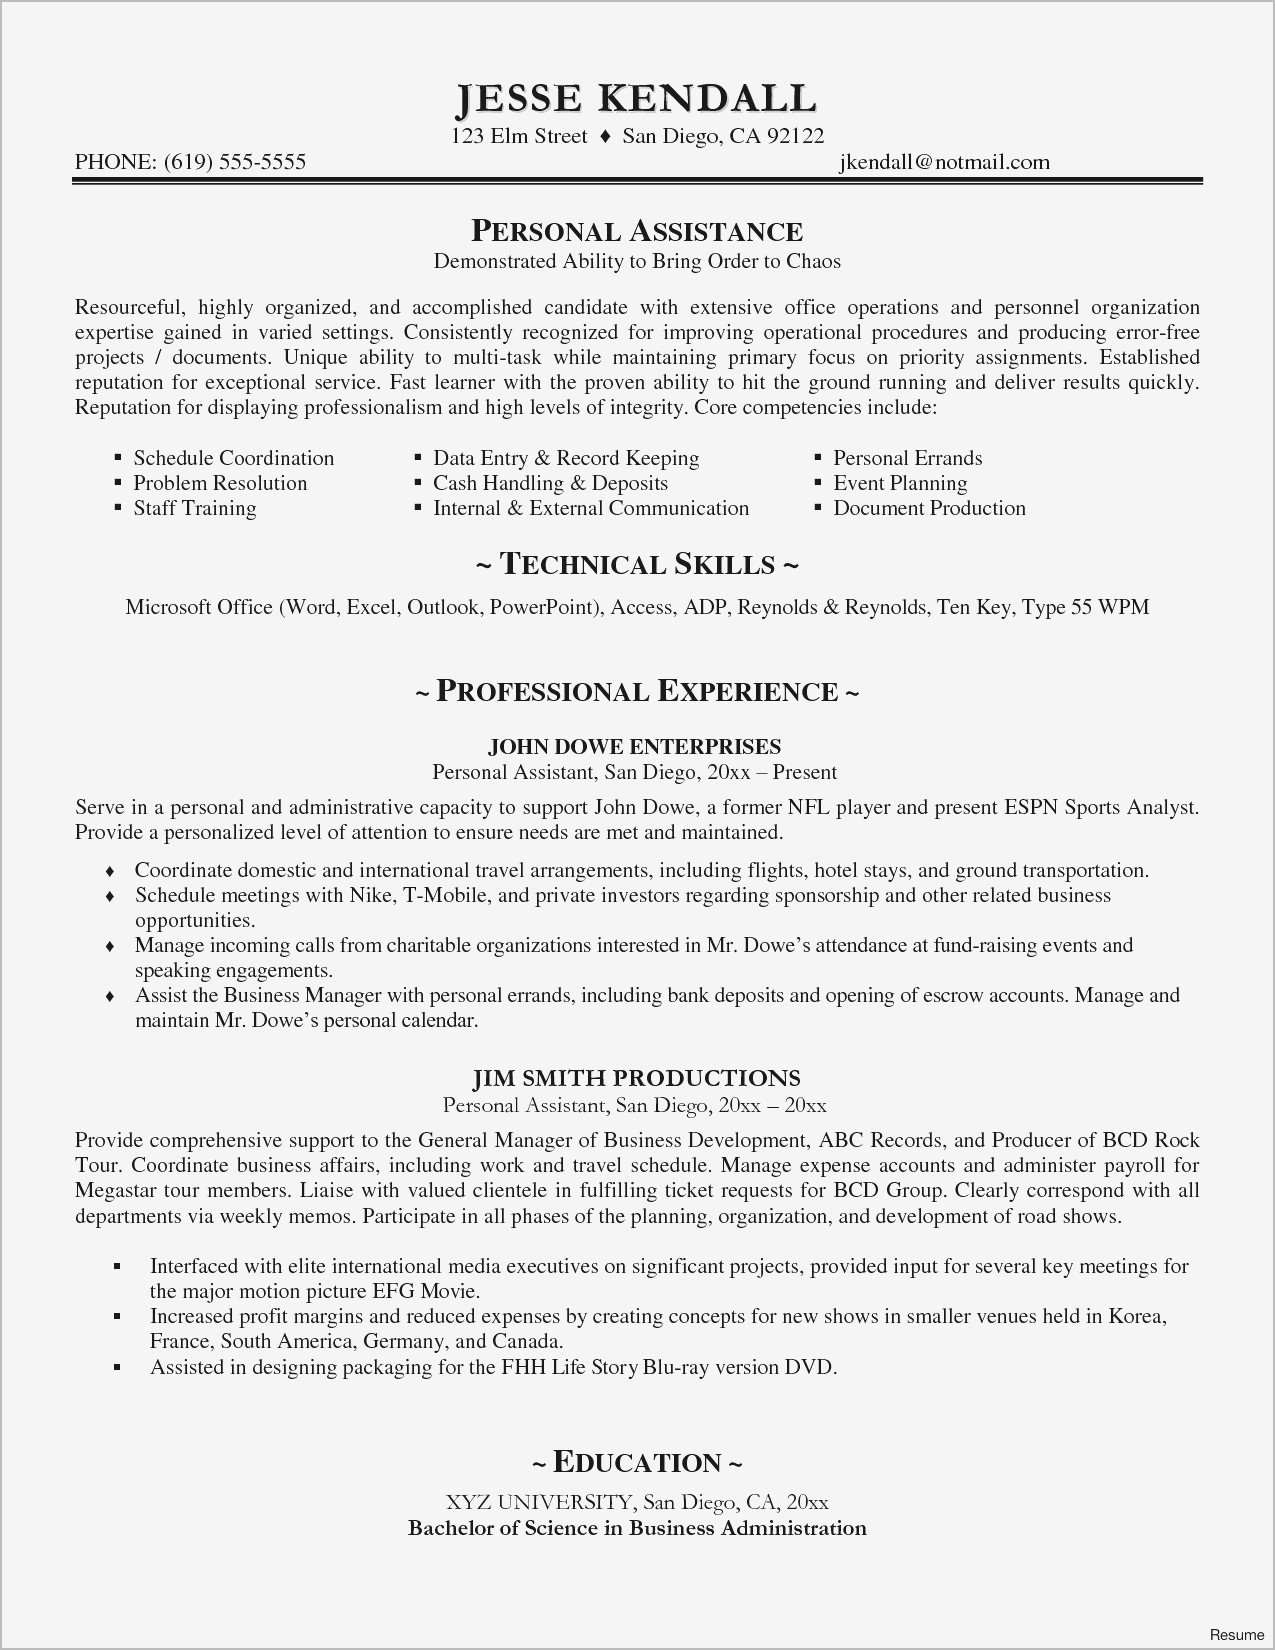 Letter Of Release Template - Press Release Template Word Inspirational New Programmer Resume